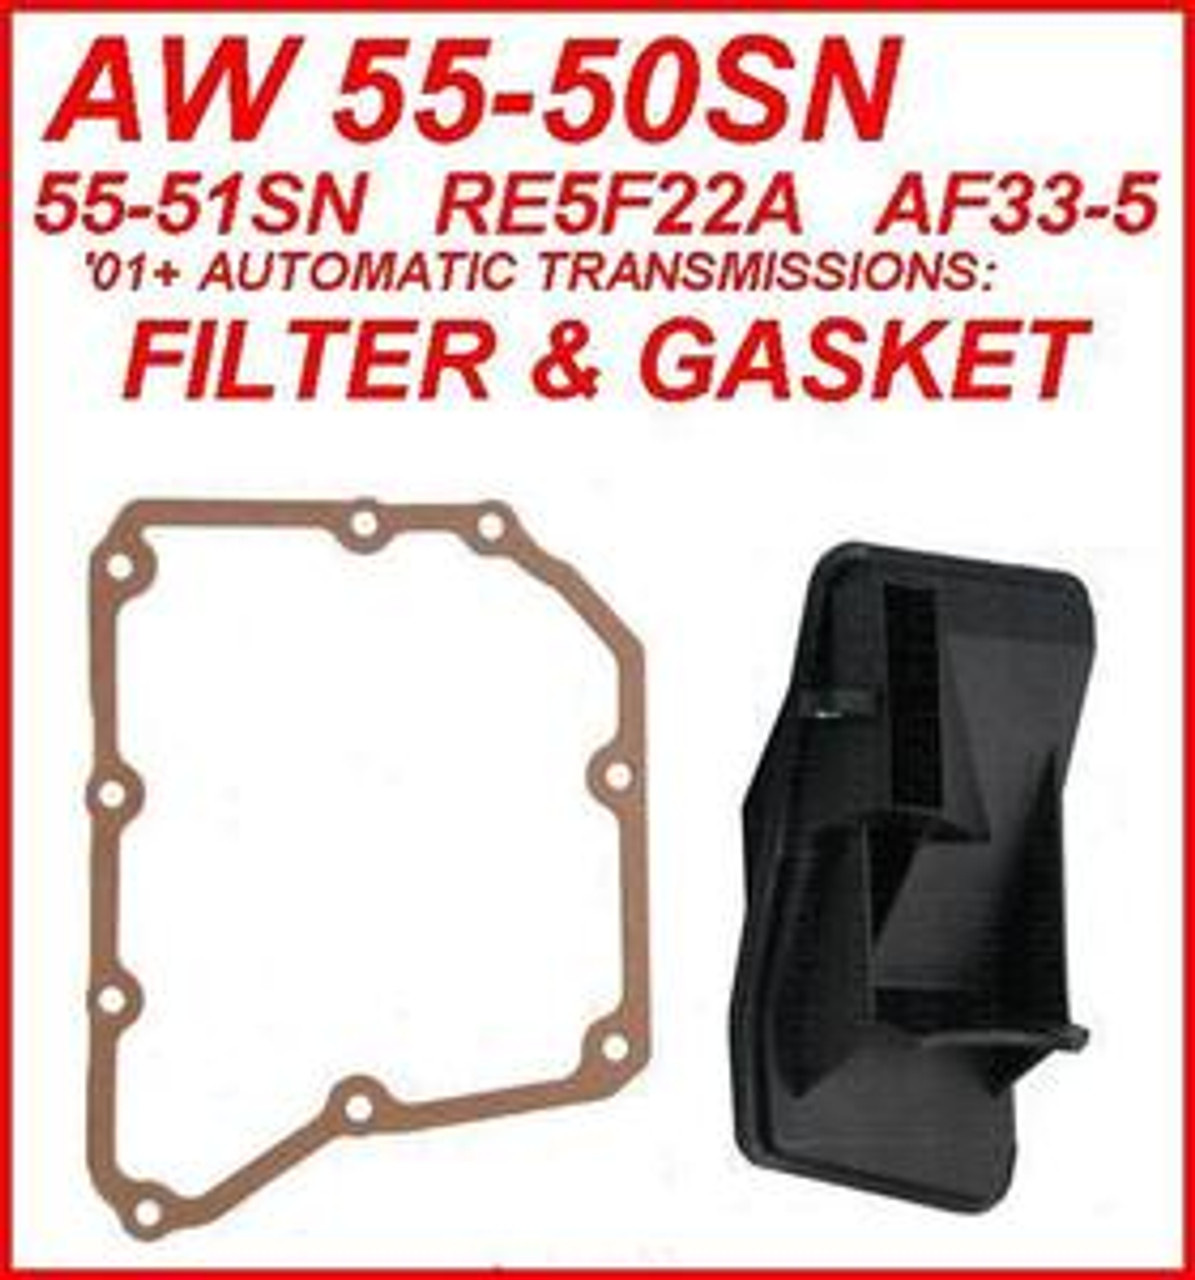 AW 55-50SN 55-51SN RE5F22A TRANSMISSION FILTER & VALVE BODY COVER GASKET  FITS NISSAN